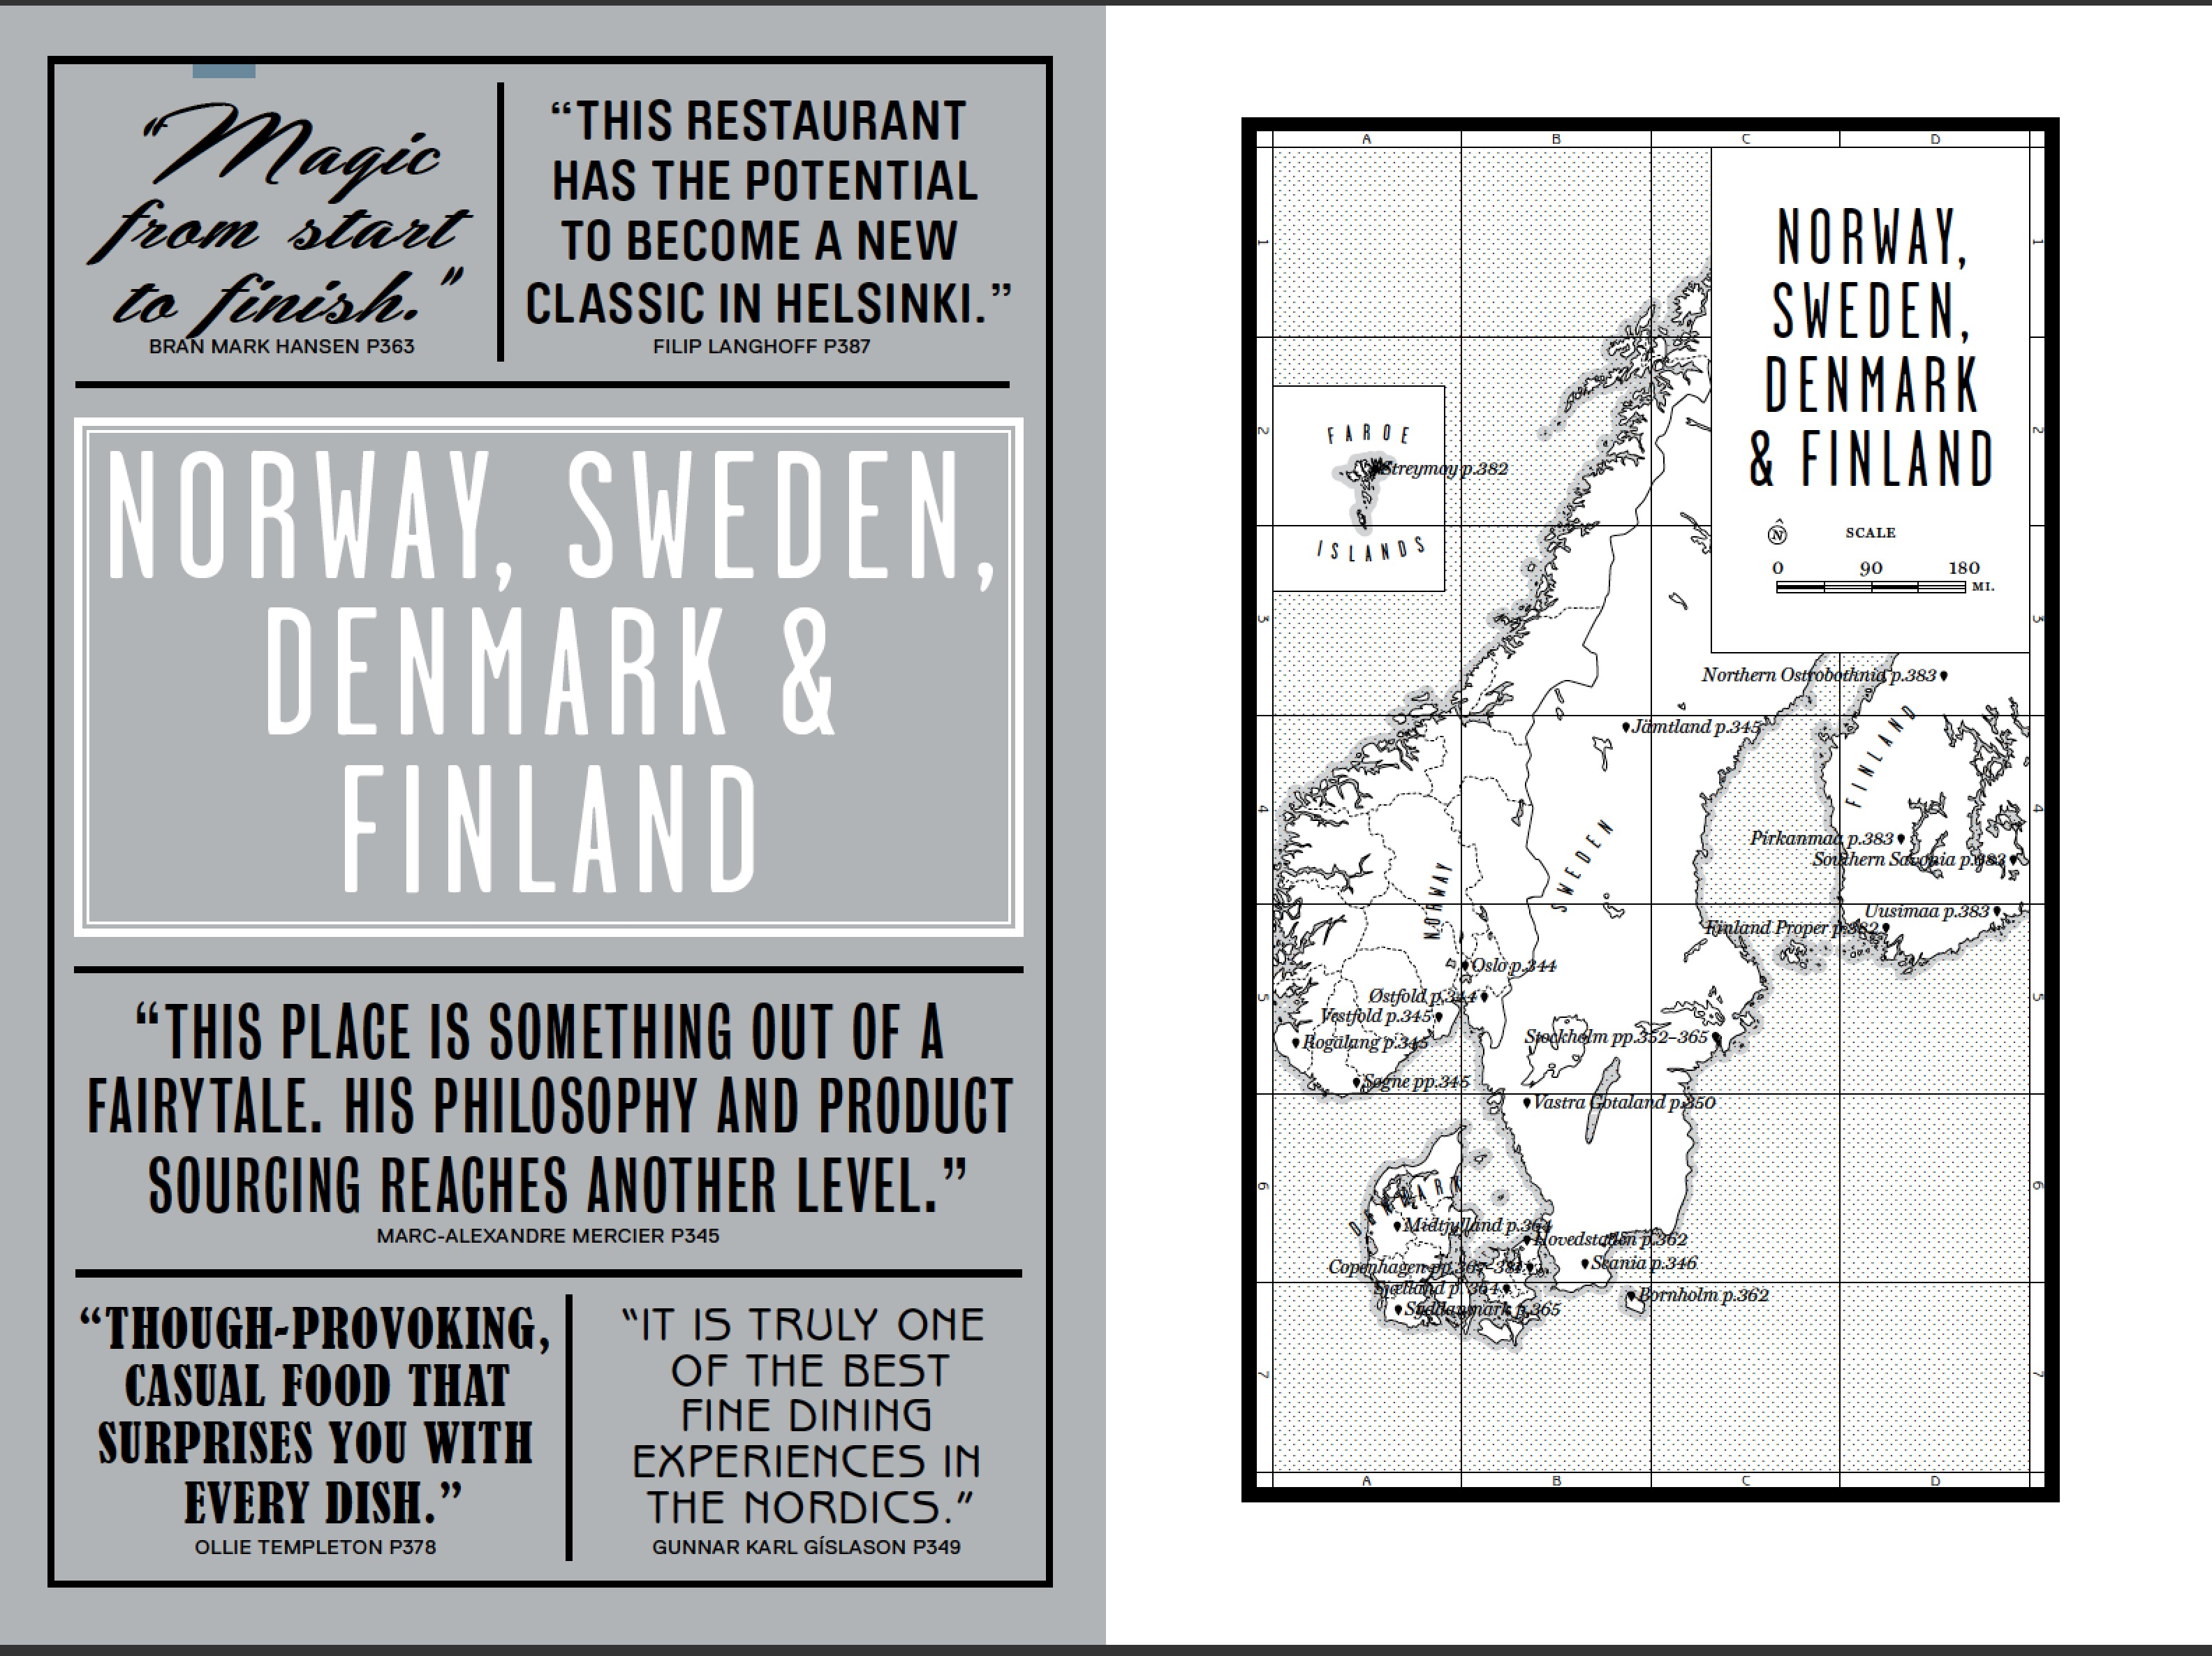 The Norway, Sweden, Denmark and Finland introduction to our book Where Chefs Eat